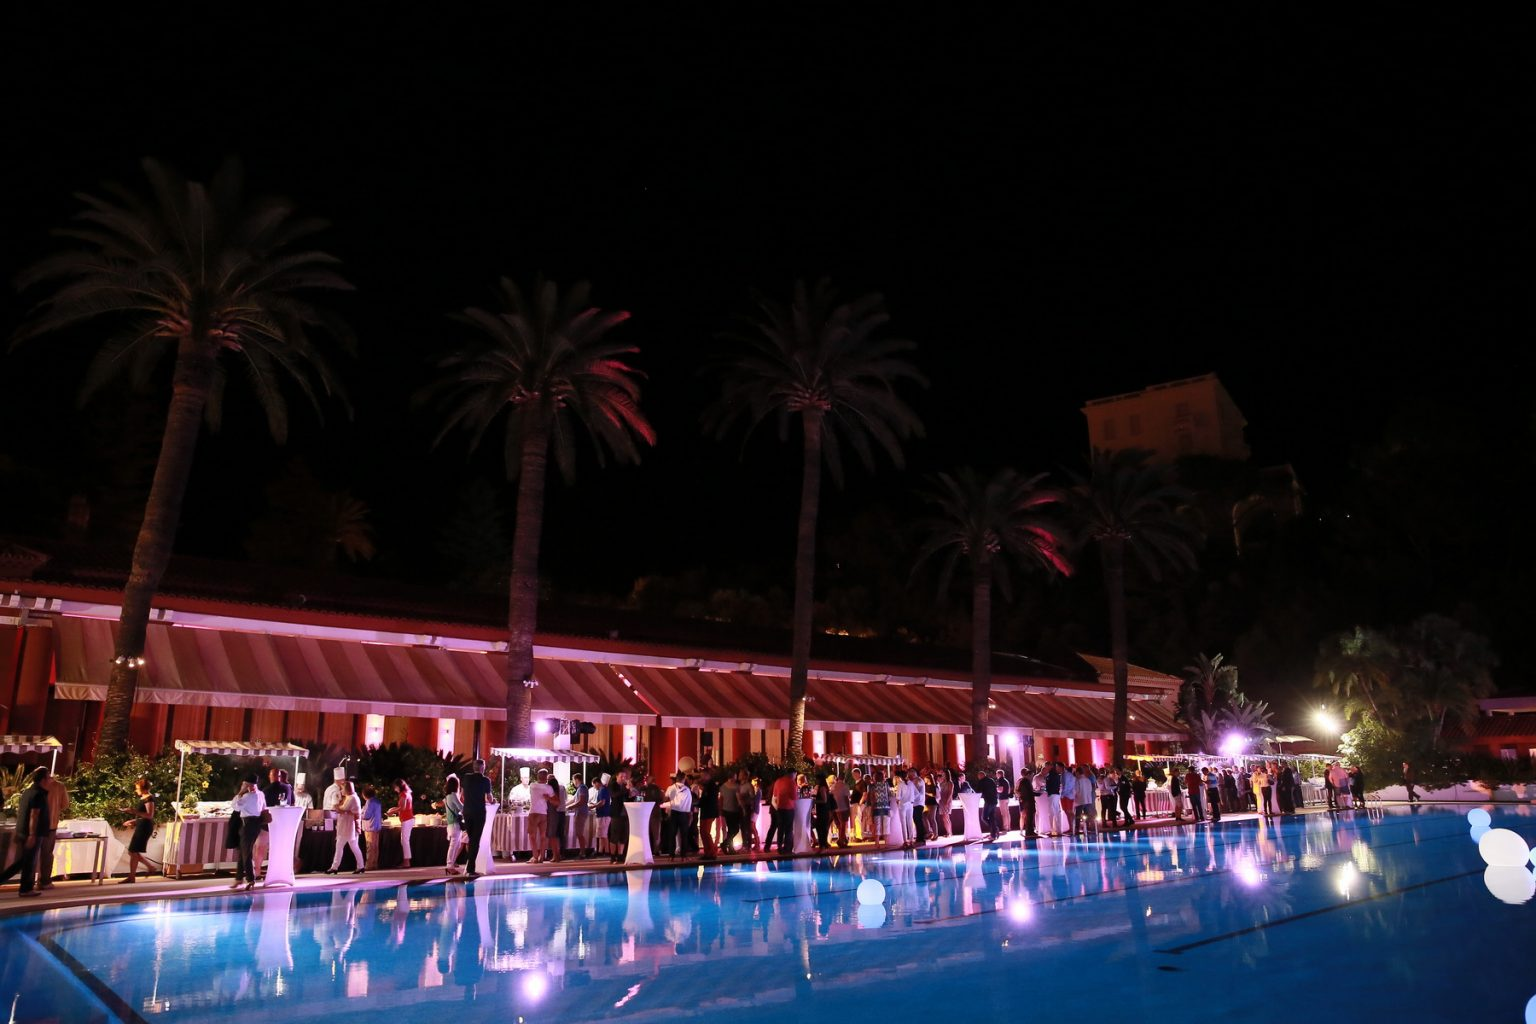 Le Deck Monte Carlo Pool Evening 33 - Le Deck Monte Carlo Pool Evening